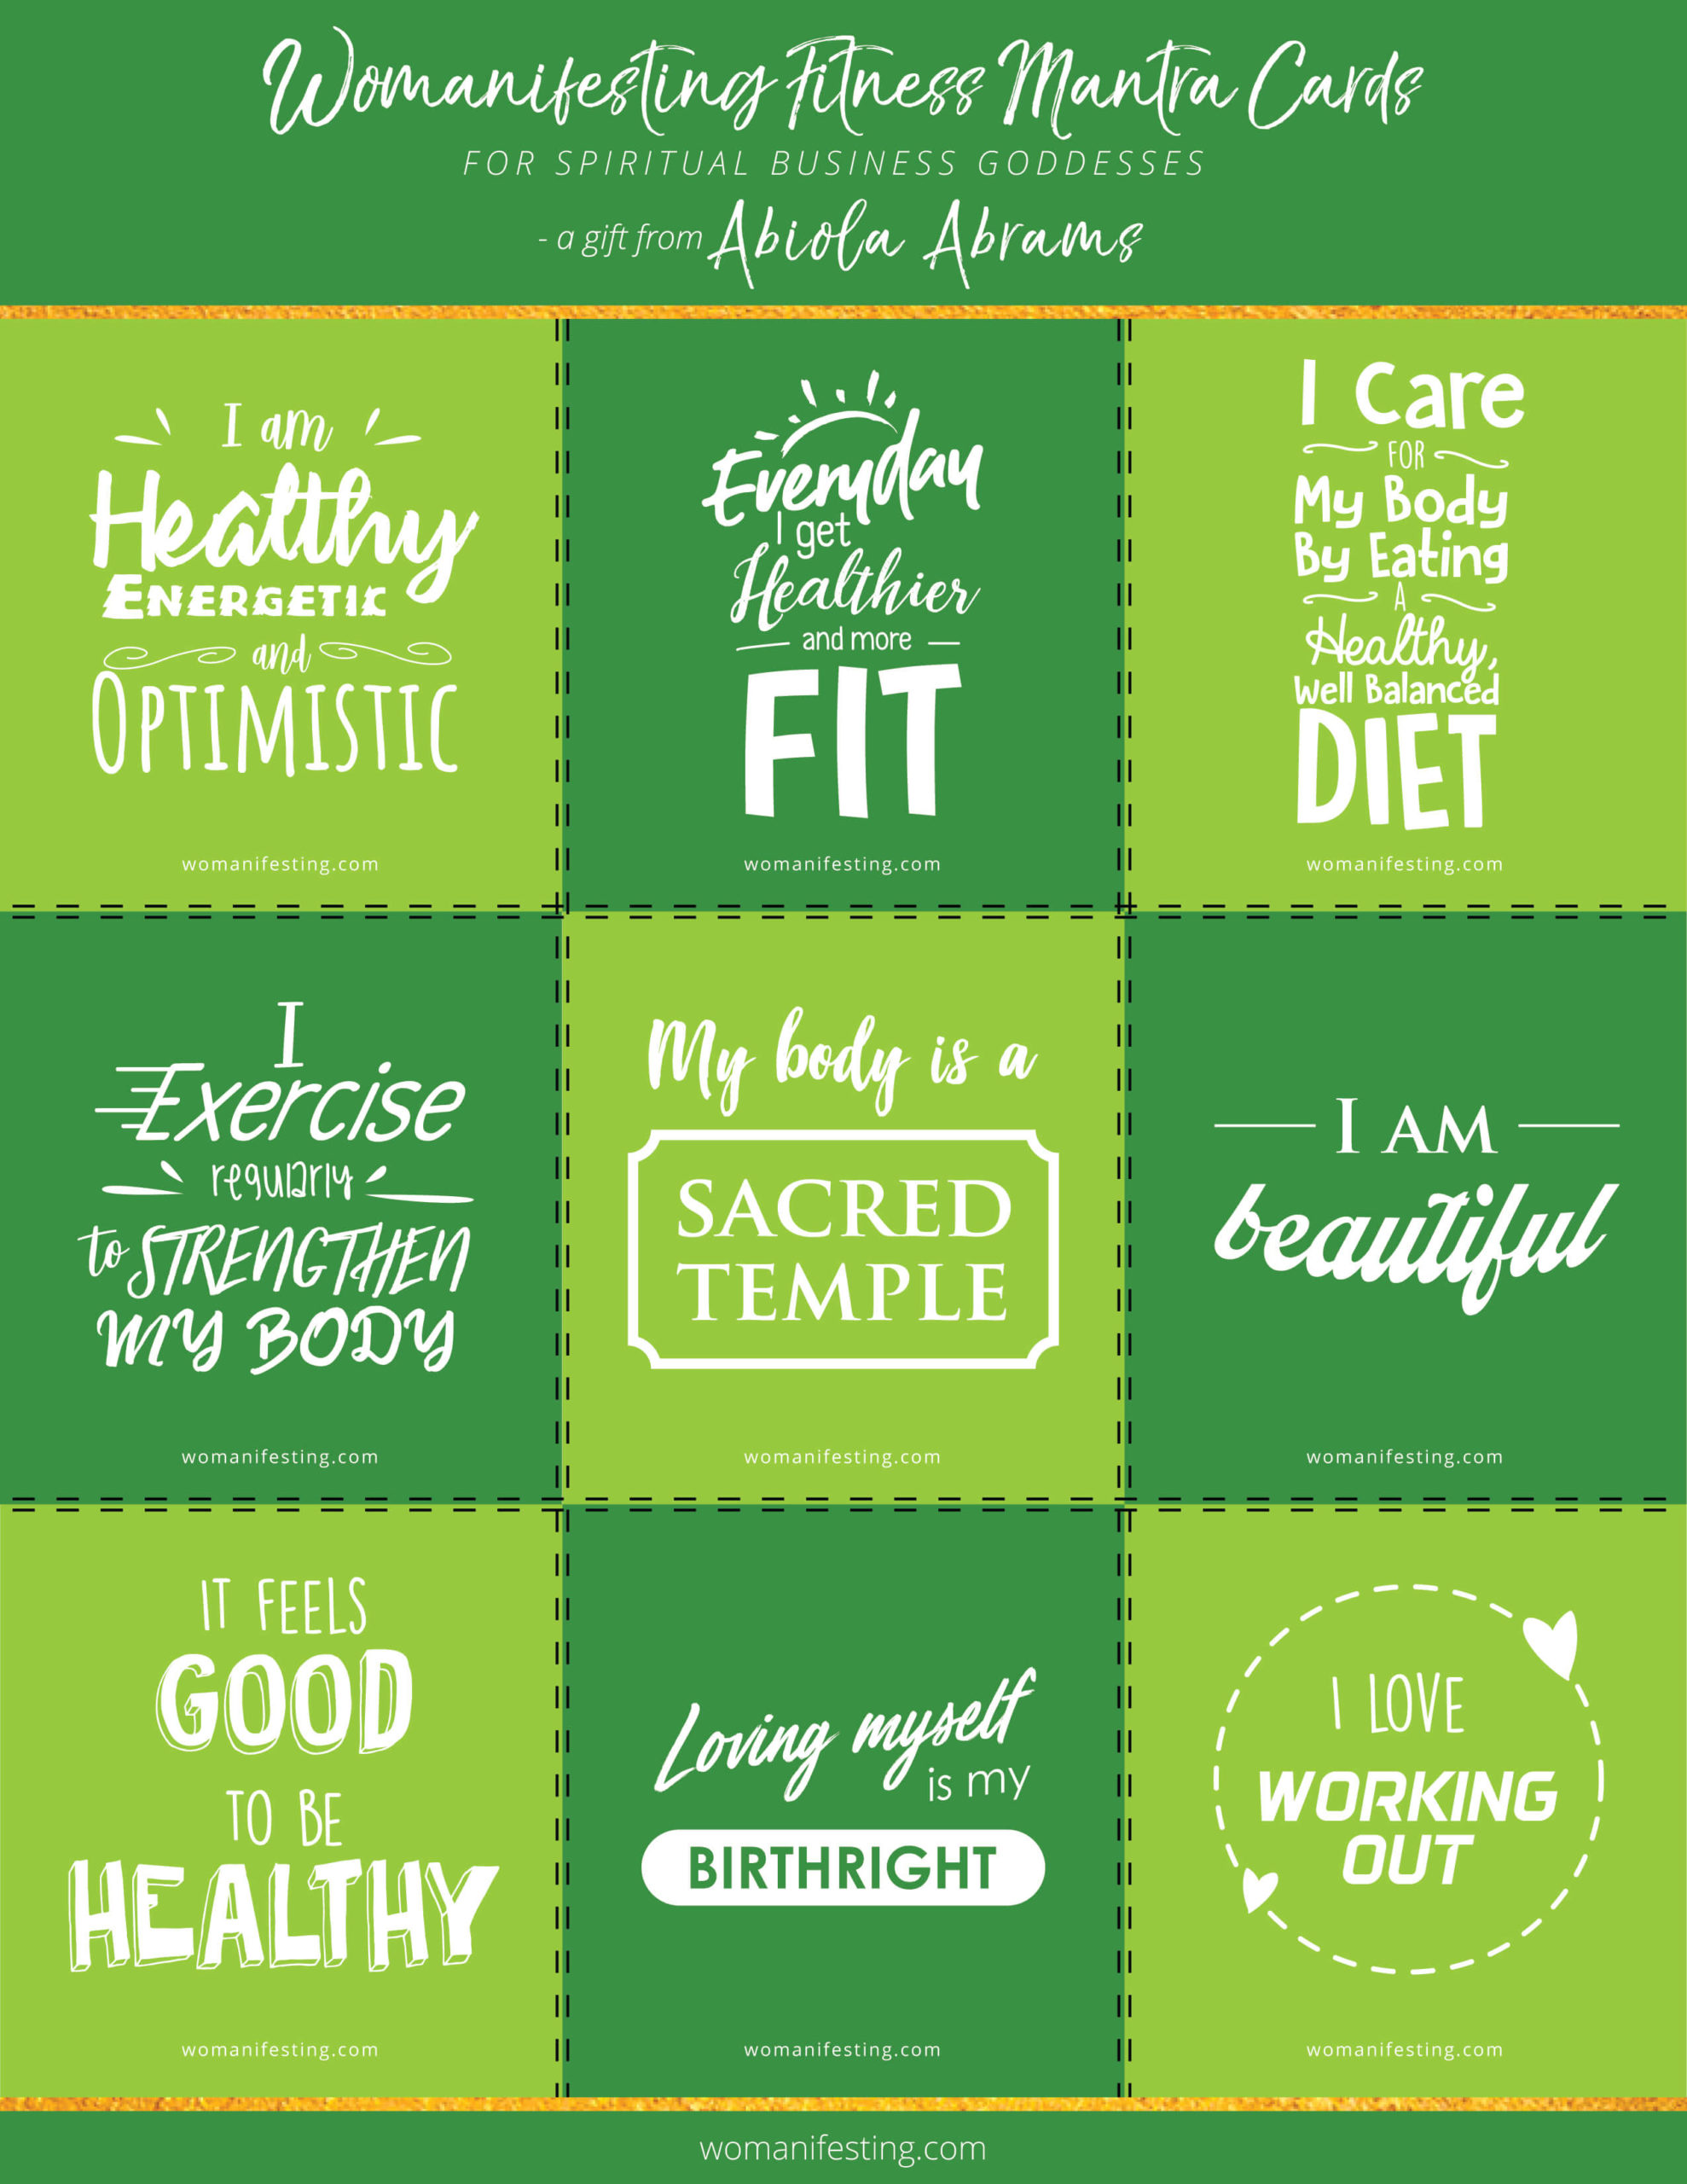 Health & Fitness Mantra Cards: Free, Printable & Downloadable Affirmations